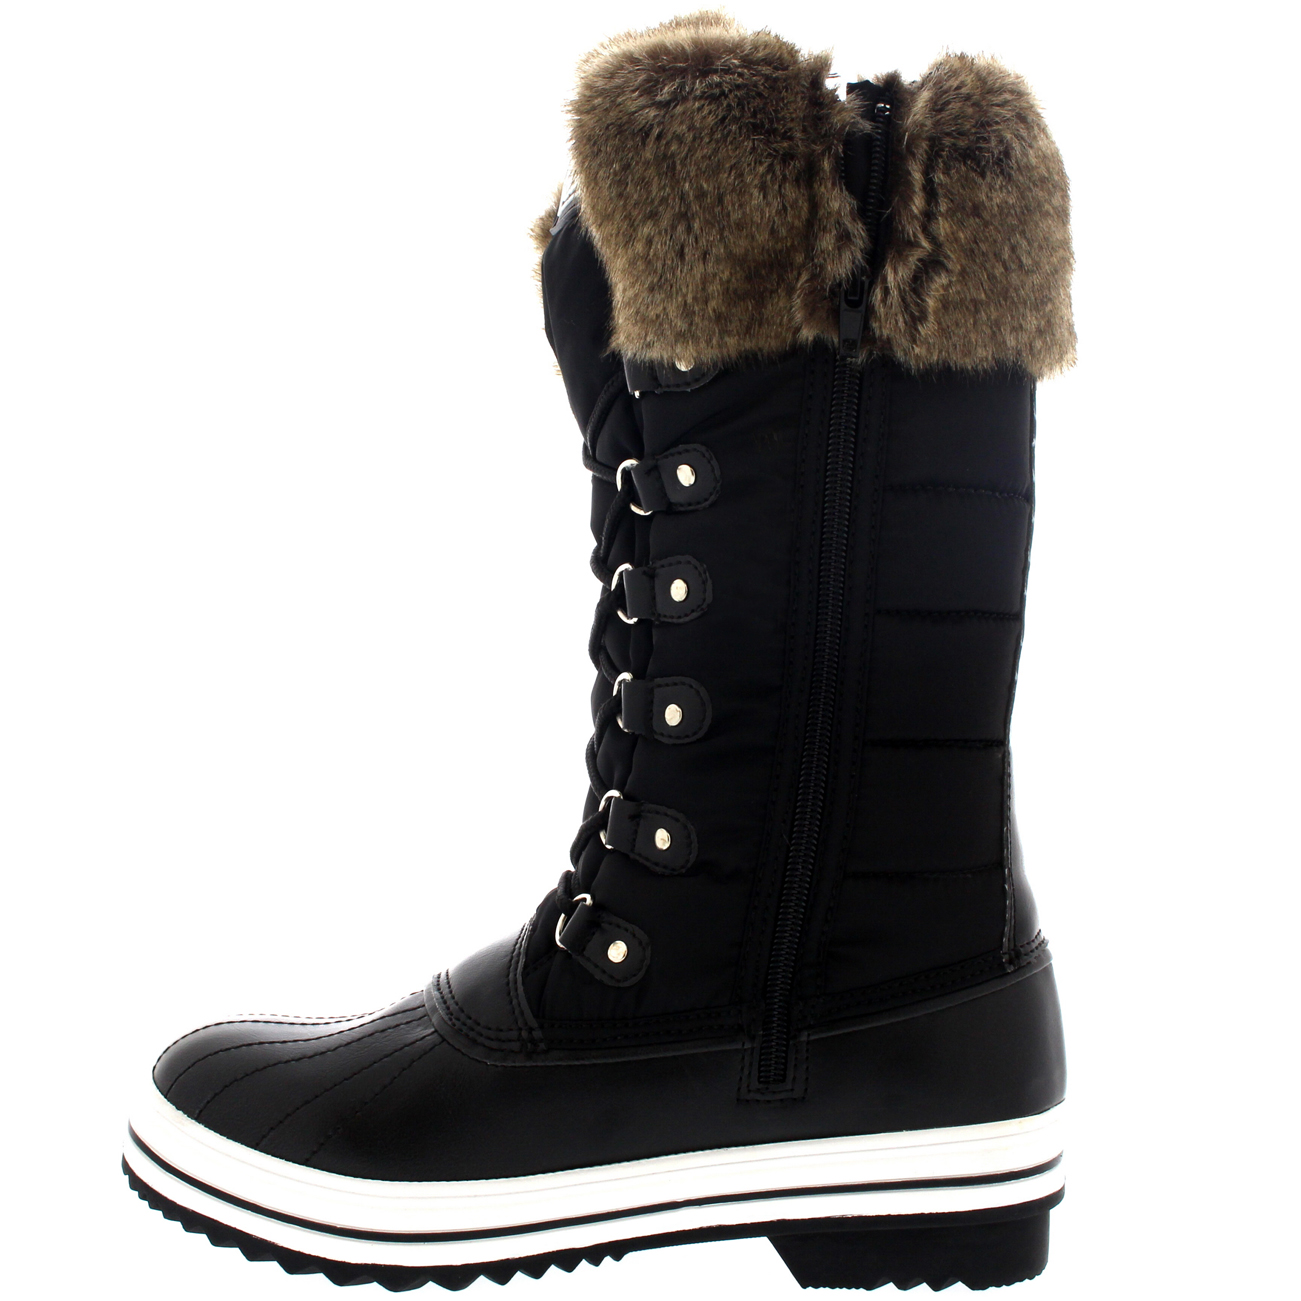 Womens Nylon Warm Side Zip Fur Duck Muck Lace Up Rain Winter Snow ...